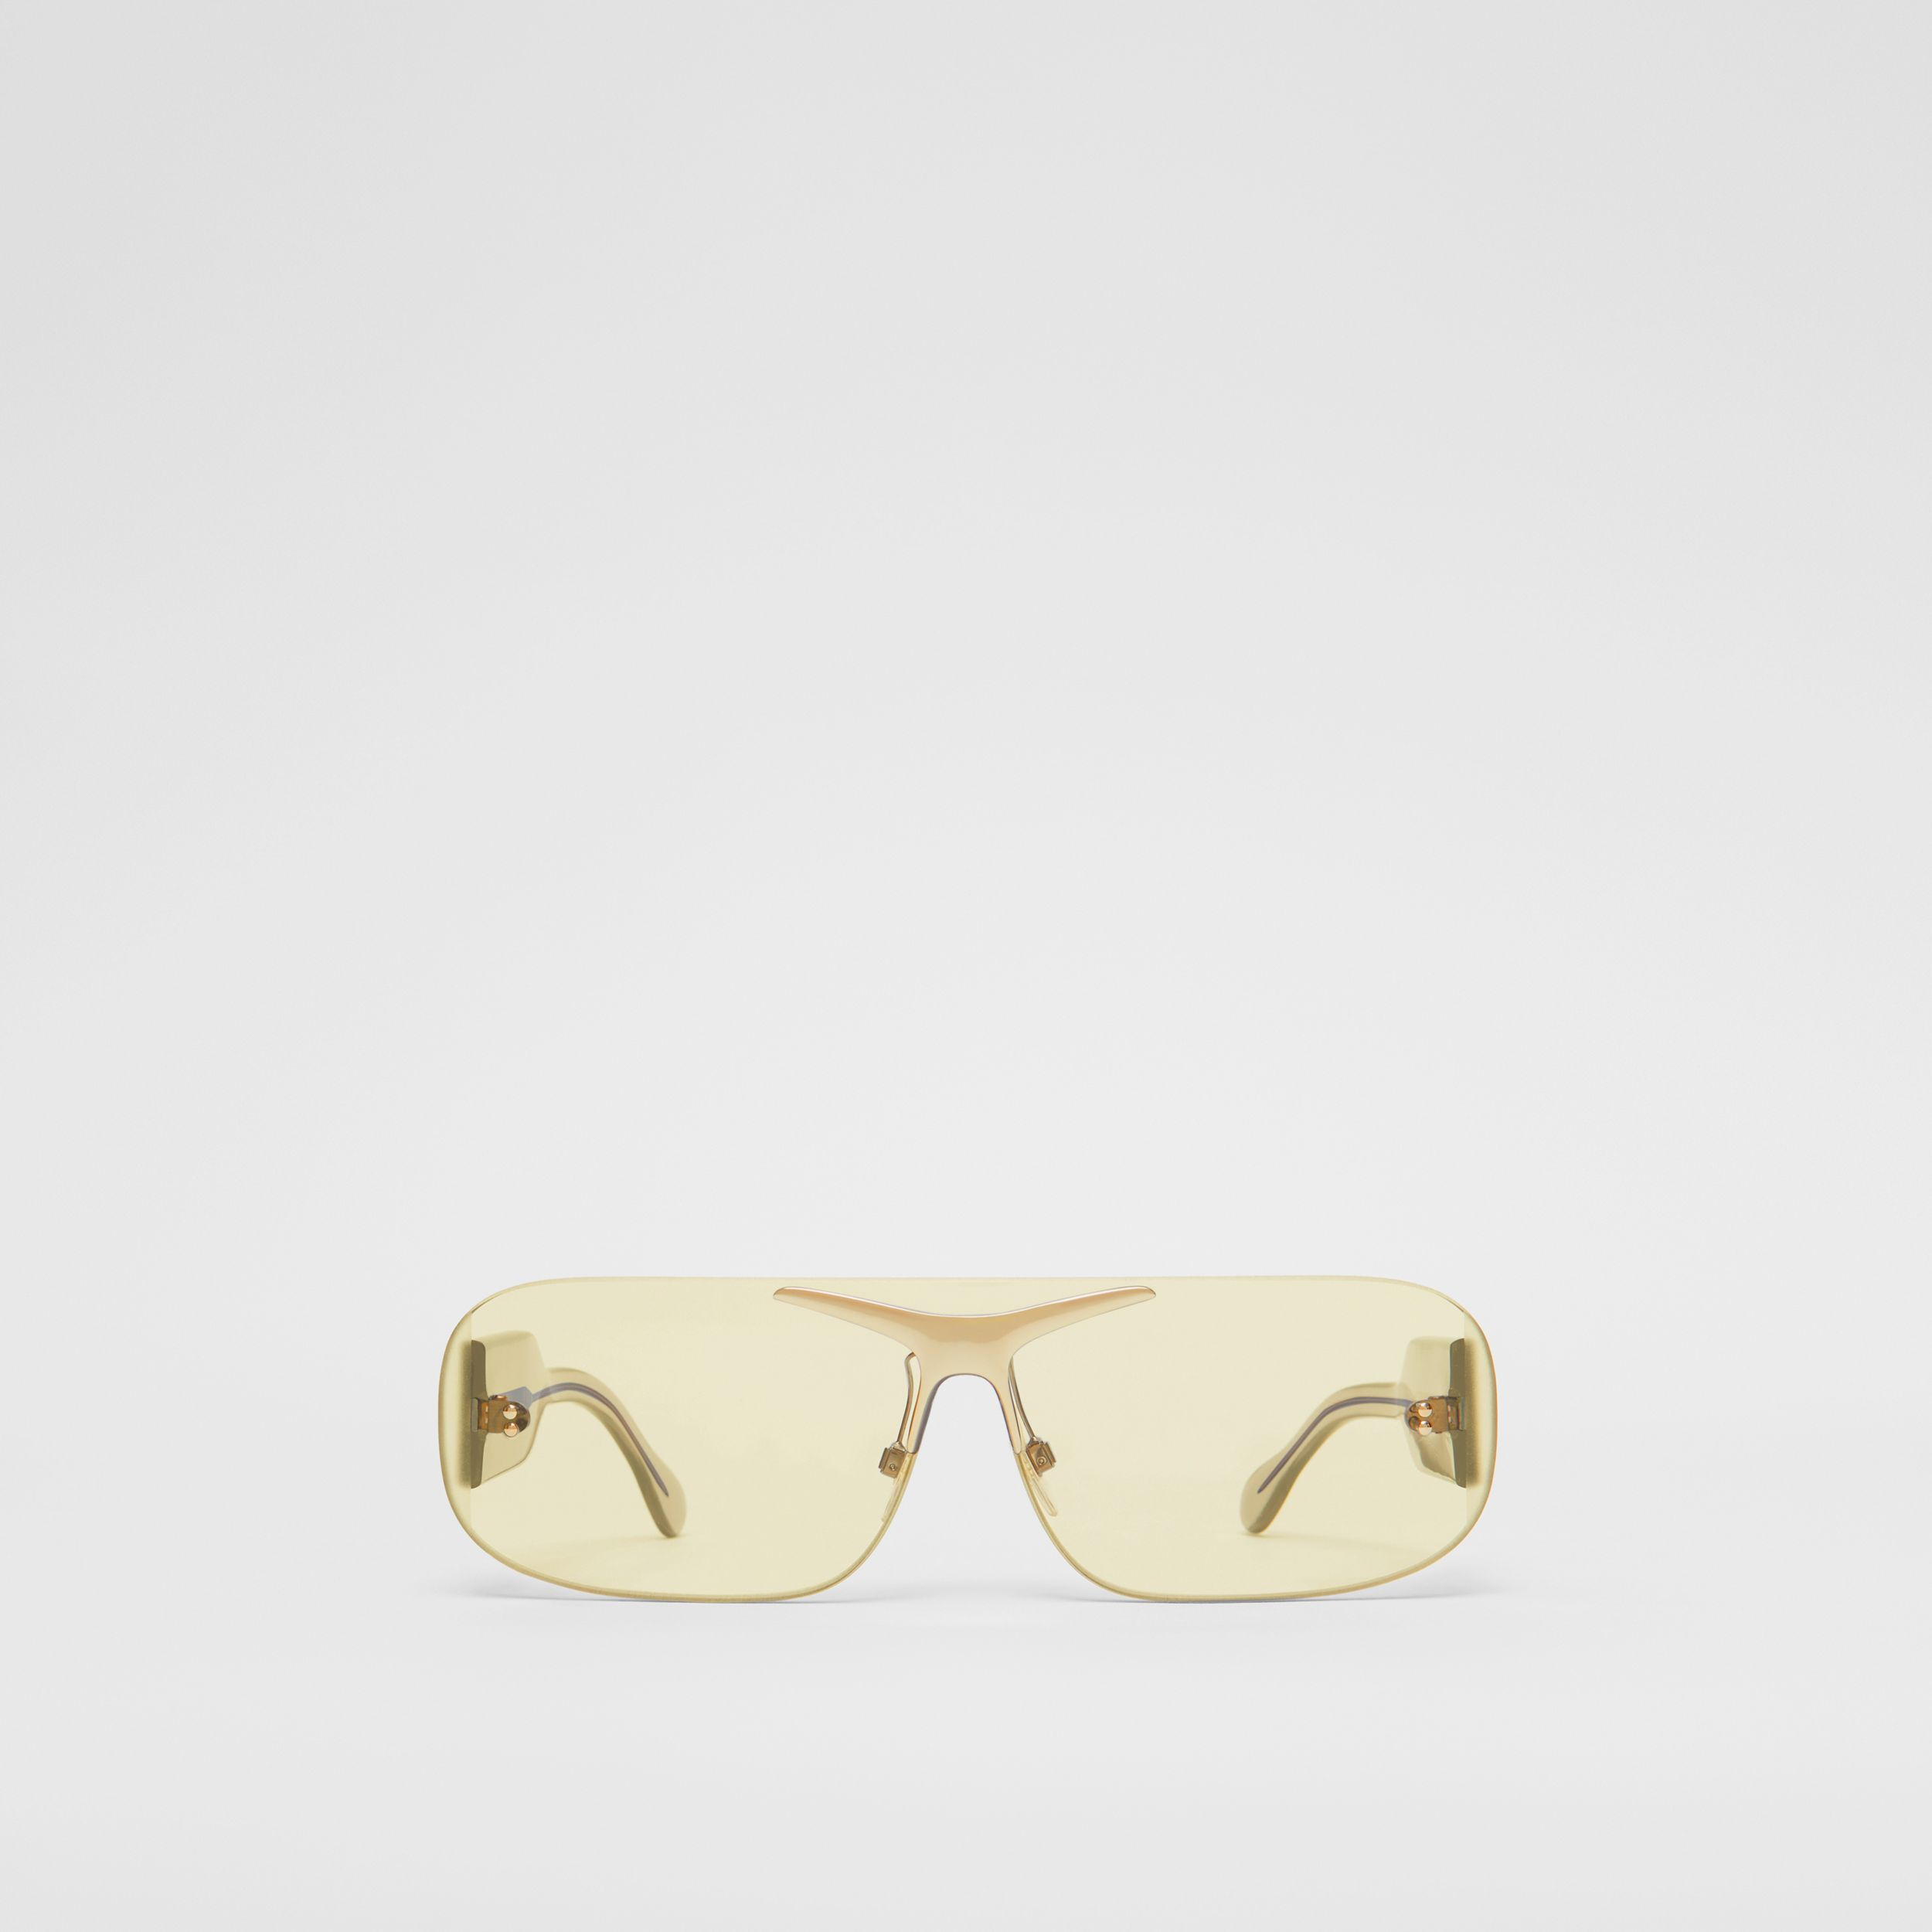 Blake Shield Sunglasses in Nude Gold | Burberry Singapore - 1